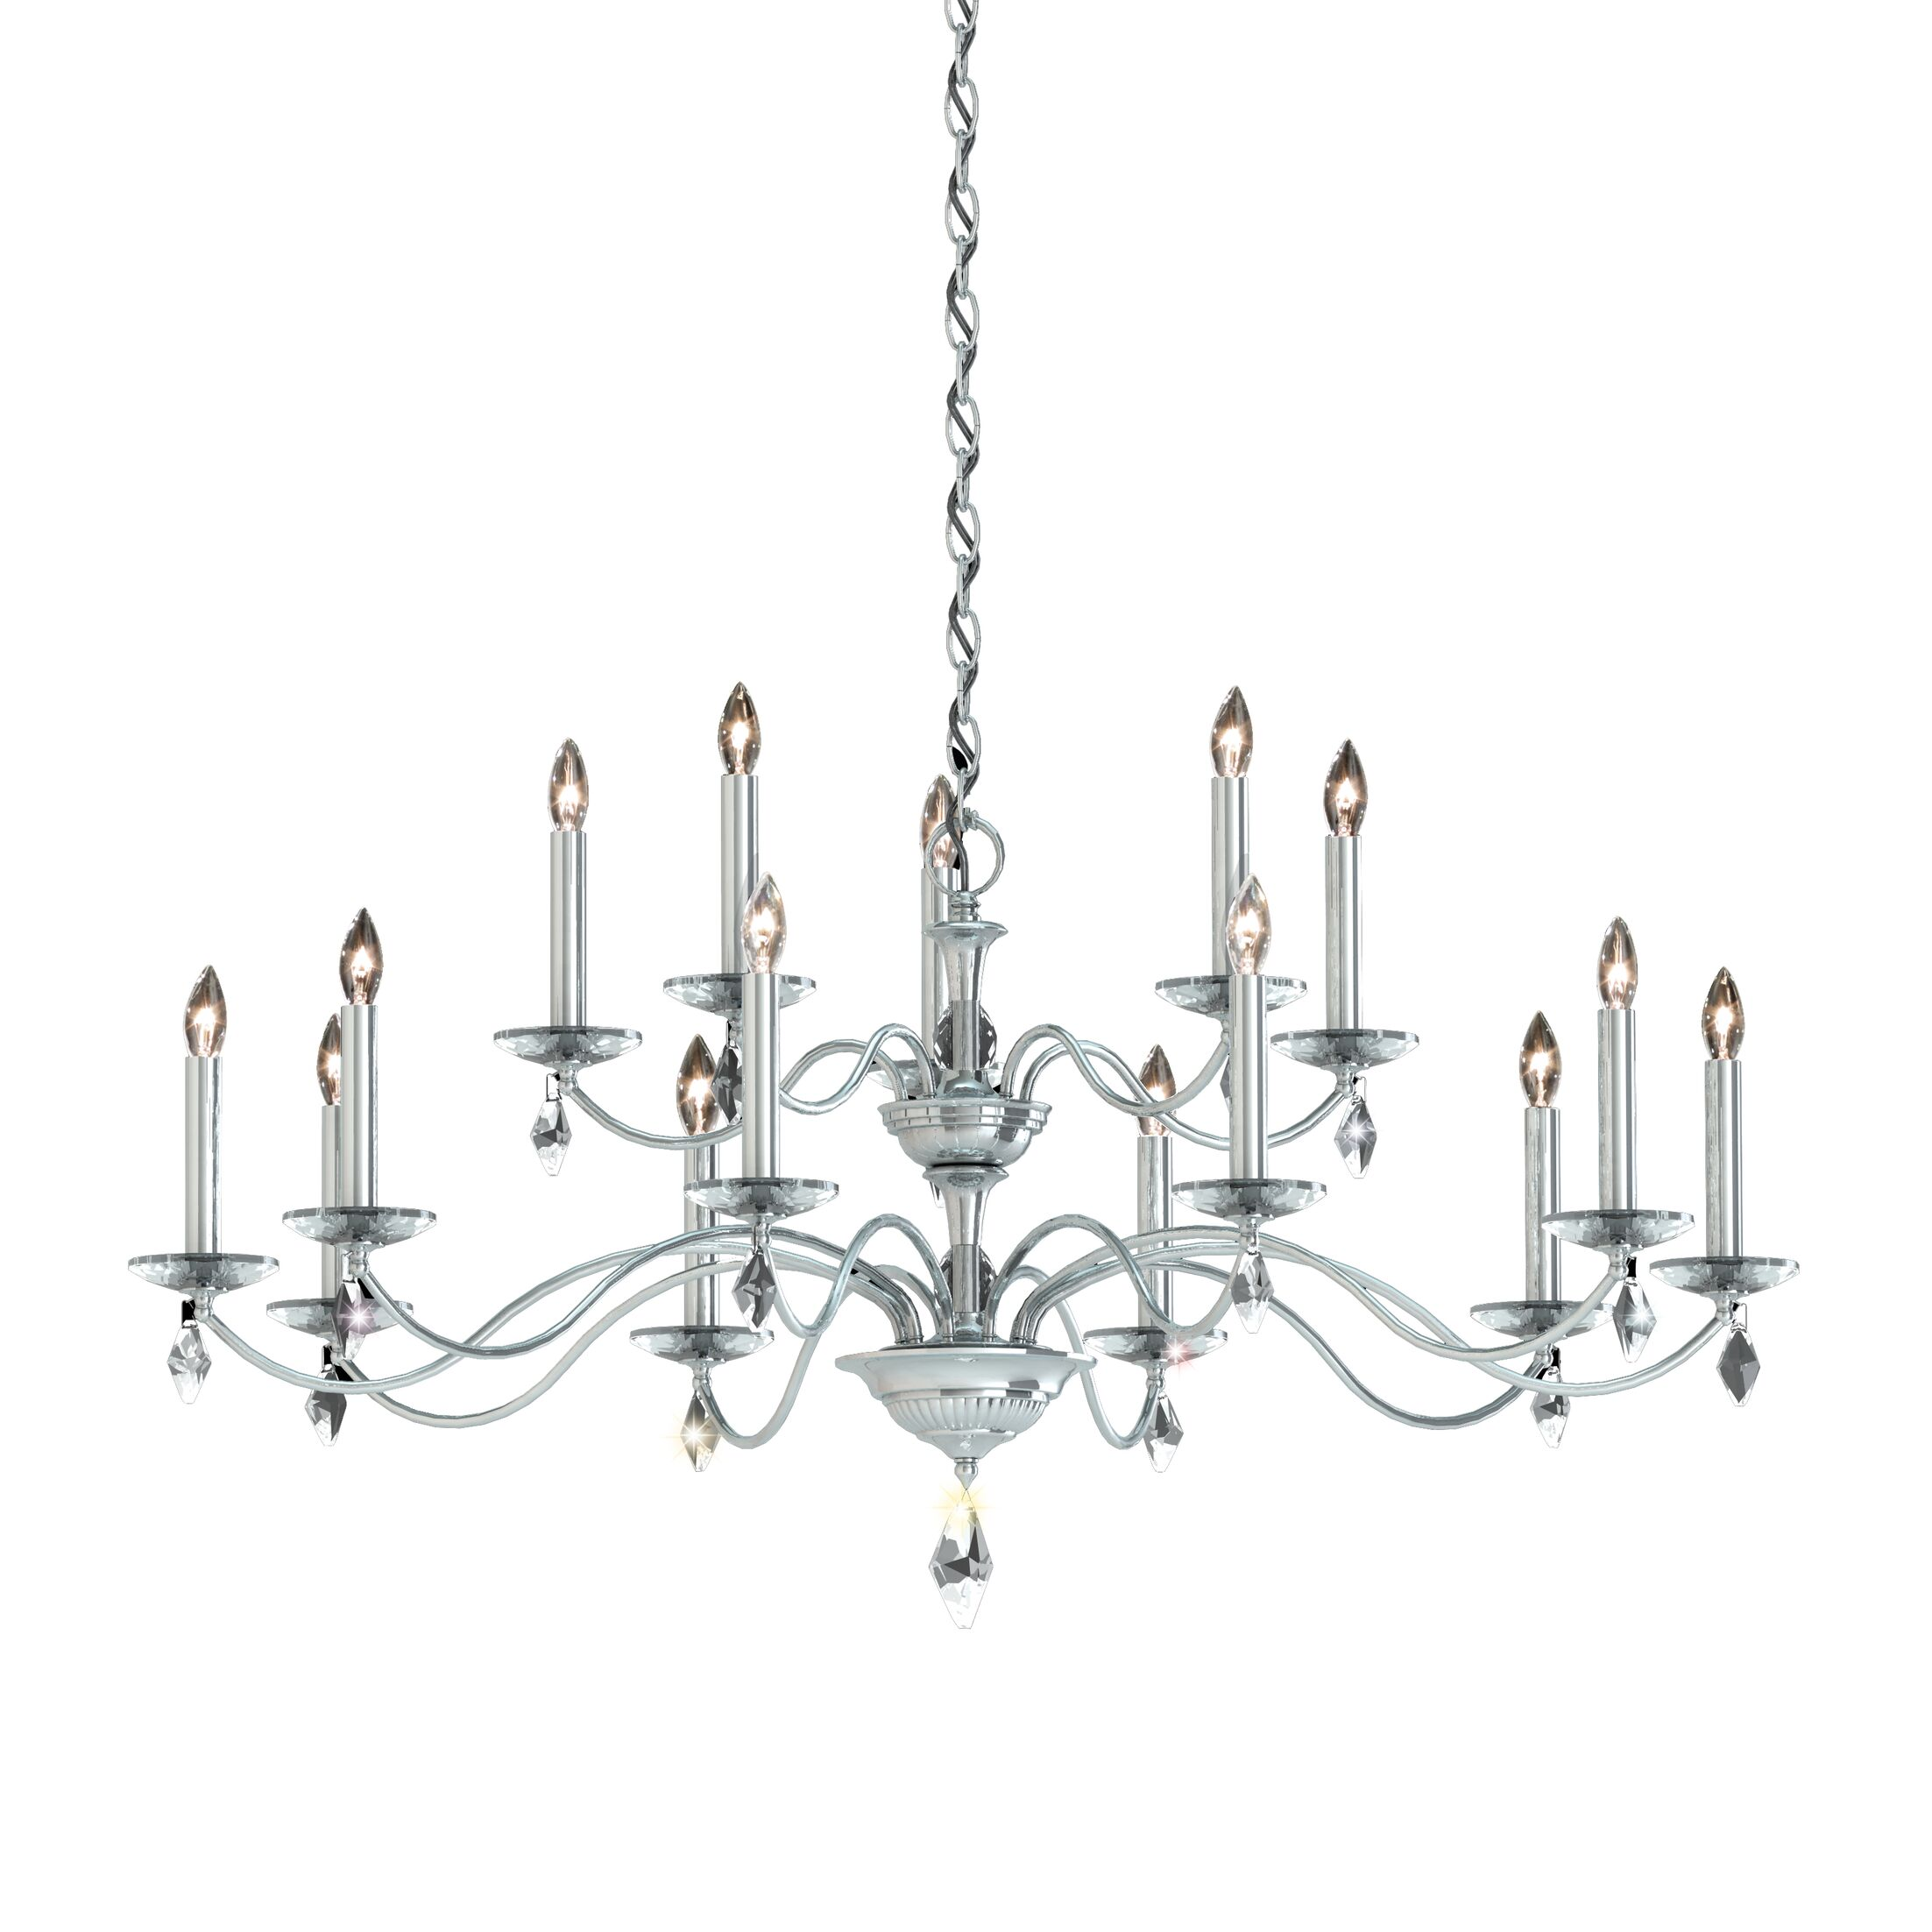 Modique 2 Tier 15-Light Chandelier Crystal Grade: Heritage, Finish: French Gold